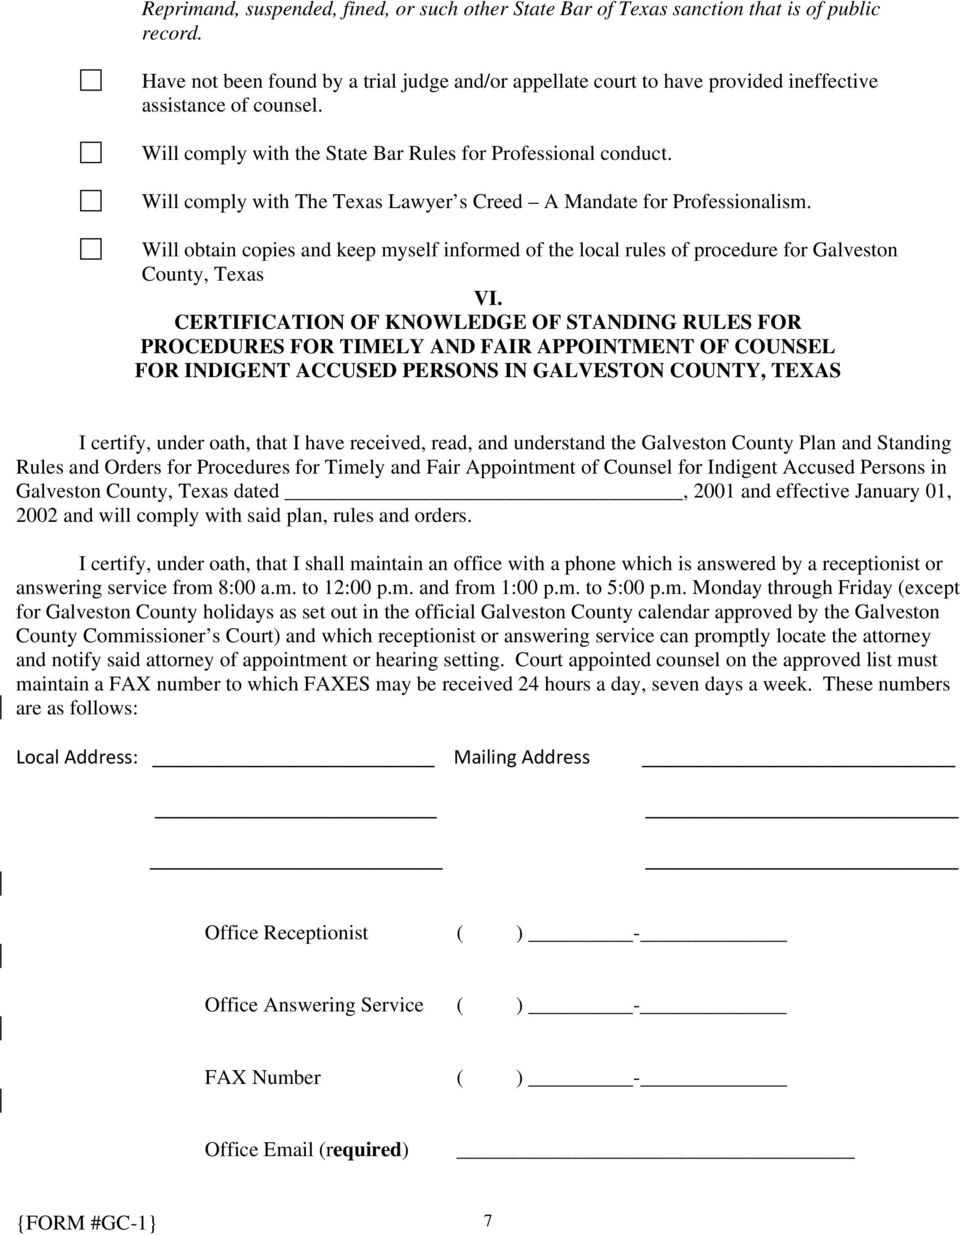 Will comply with The Texas Lawyer s Creed A Mandate for Professionalism. Will obtain copies and keep myself informed of the local rules of procedure for Galveston County, Texas VI.